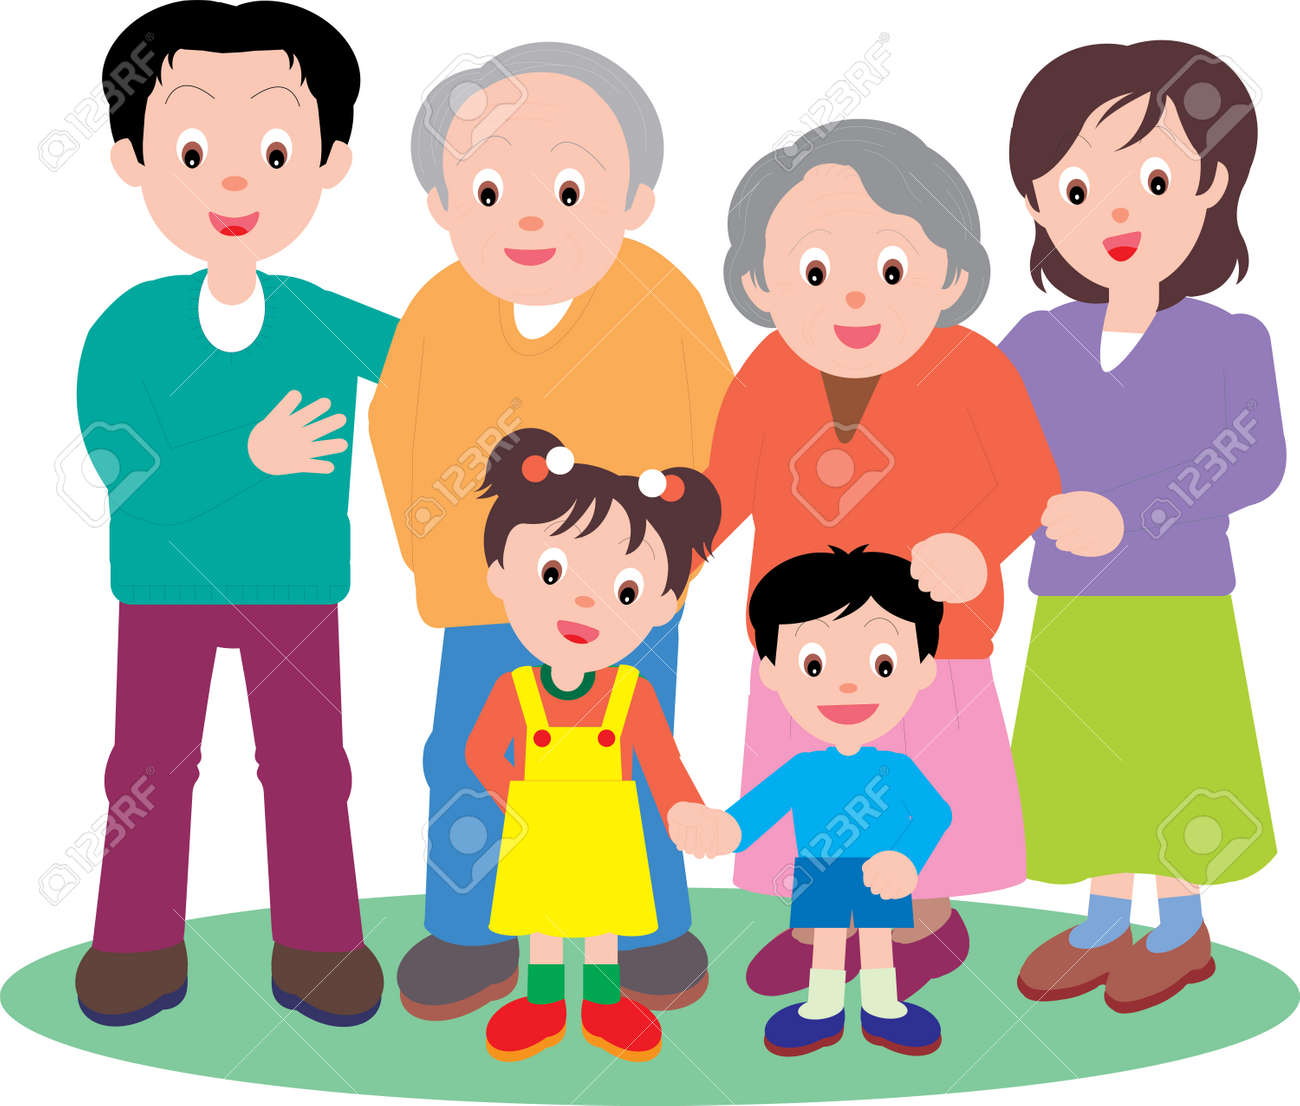 Vector Illustration of a happy family going out together. - 152160375